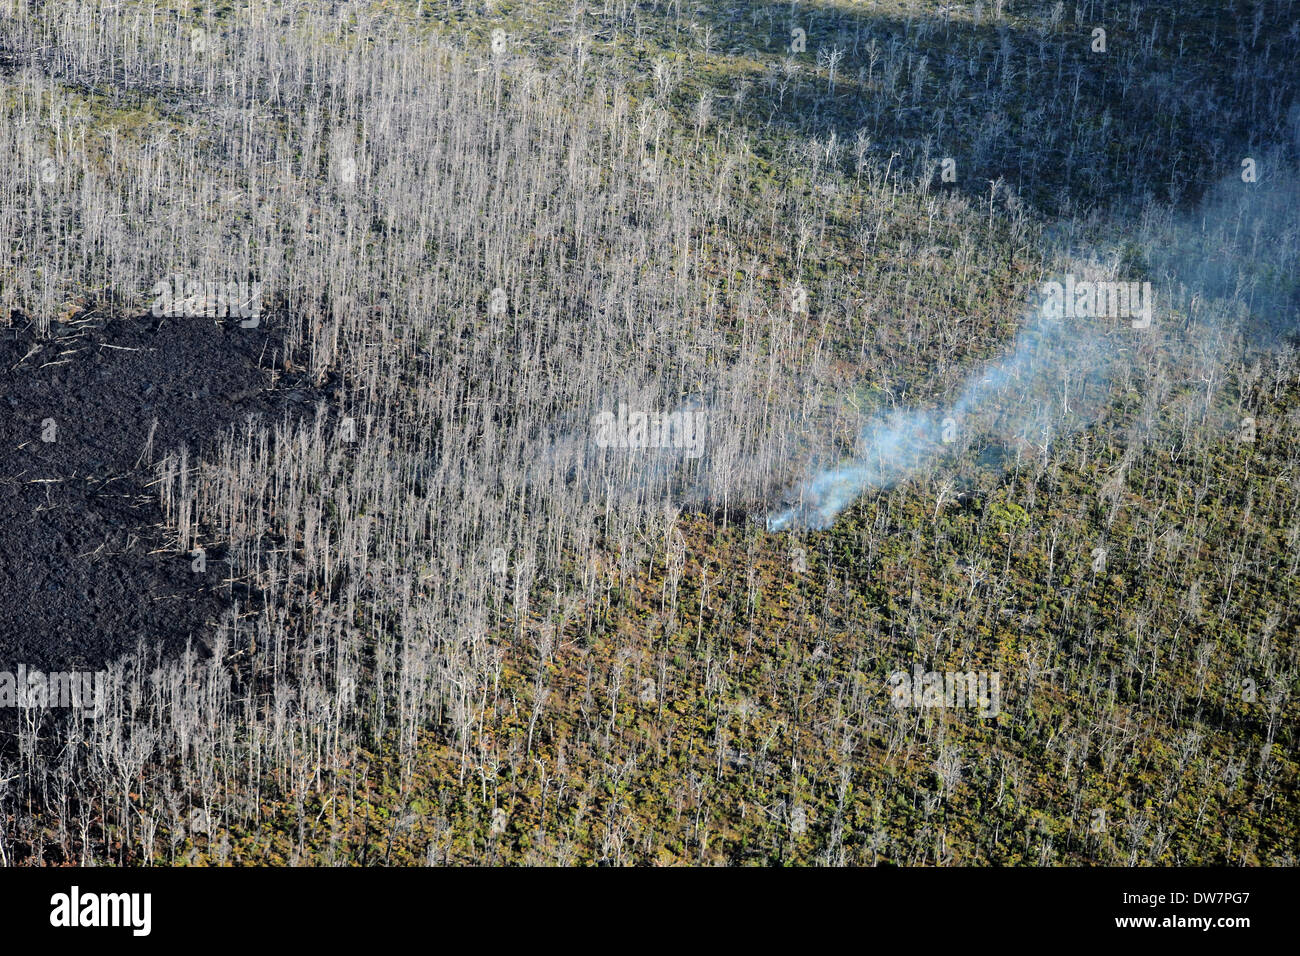 Aerial view of destroyed trees in an active lava field in the Kilauea volcano, Volcanoes National Park, Big Island, Hawaii - Stock Image